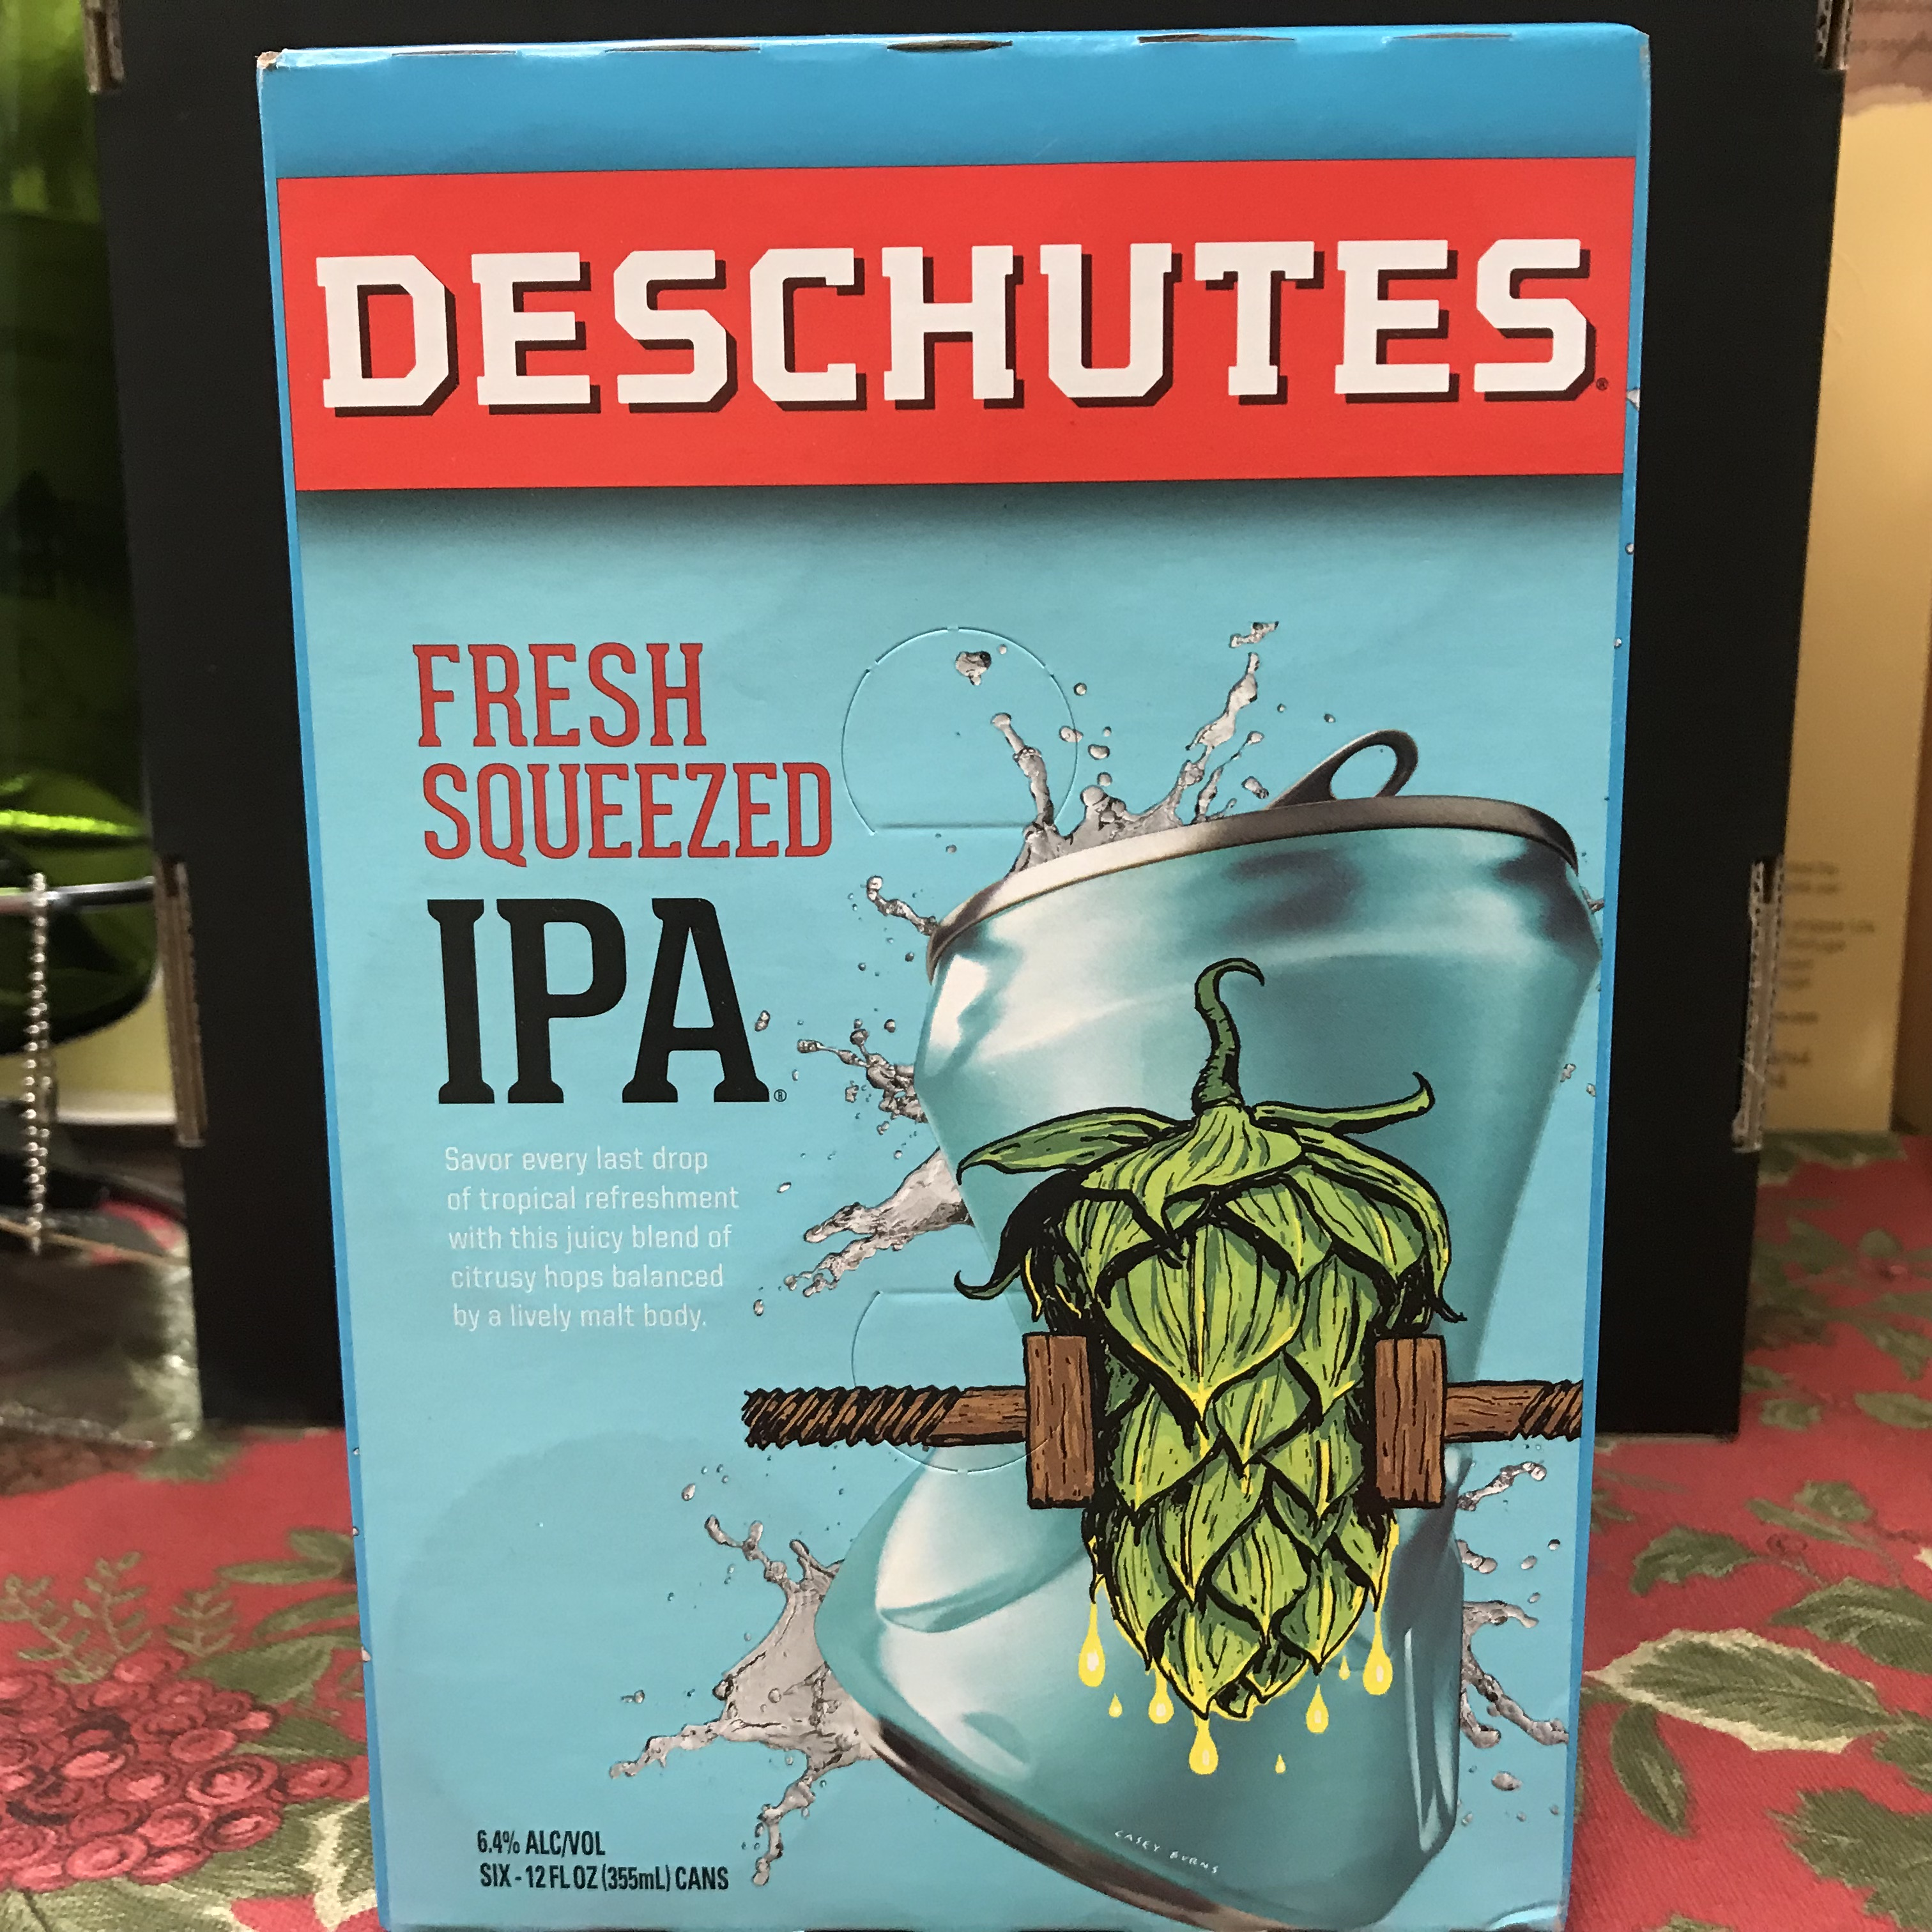 Deschutes Fresh Squeezed IPA 6 pack 12oz cans